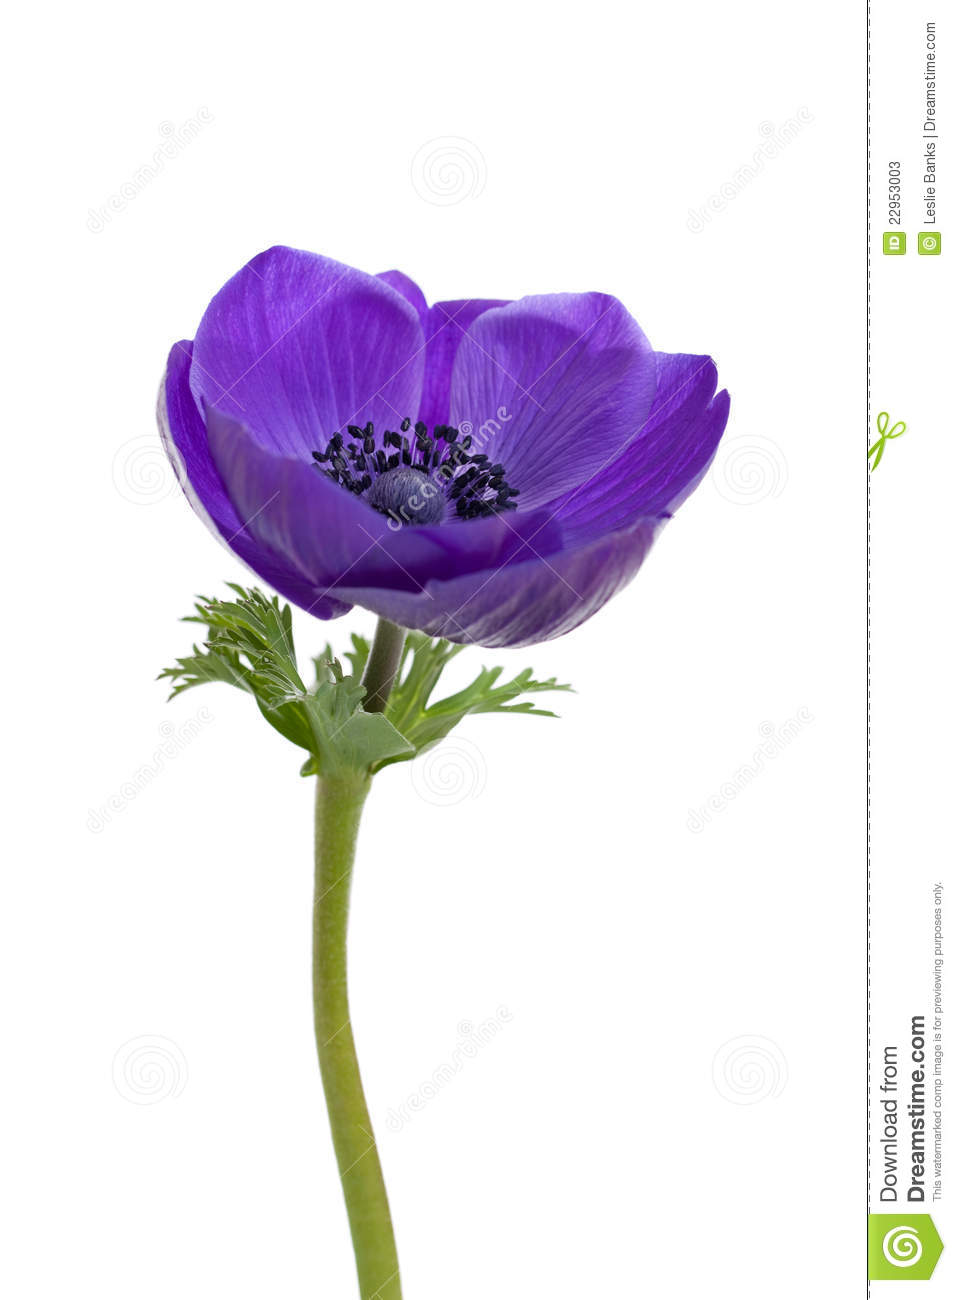 Purple Anemone Flower Stock Photos - Image: 22953003